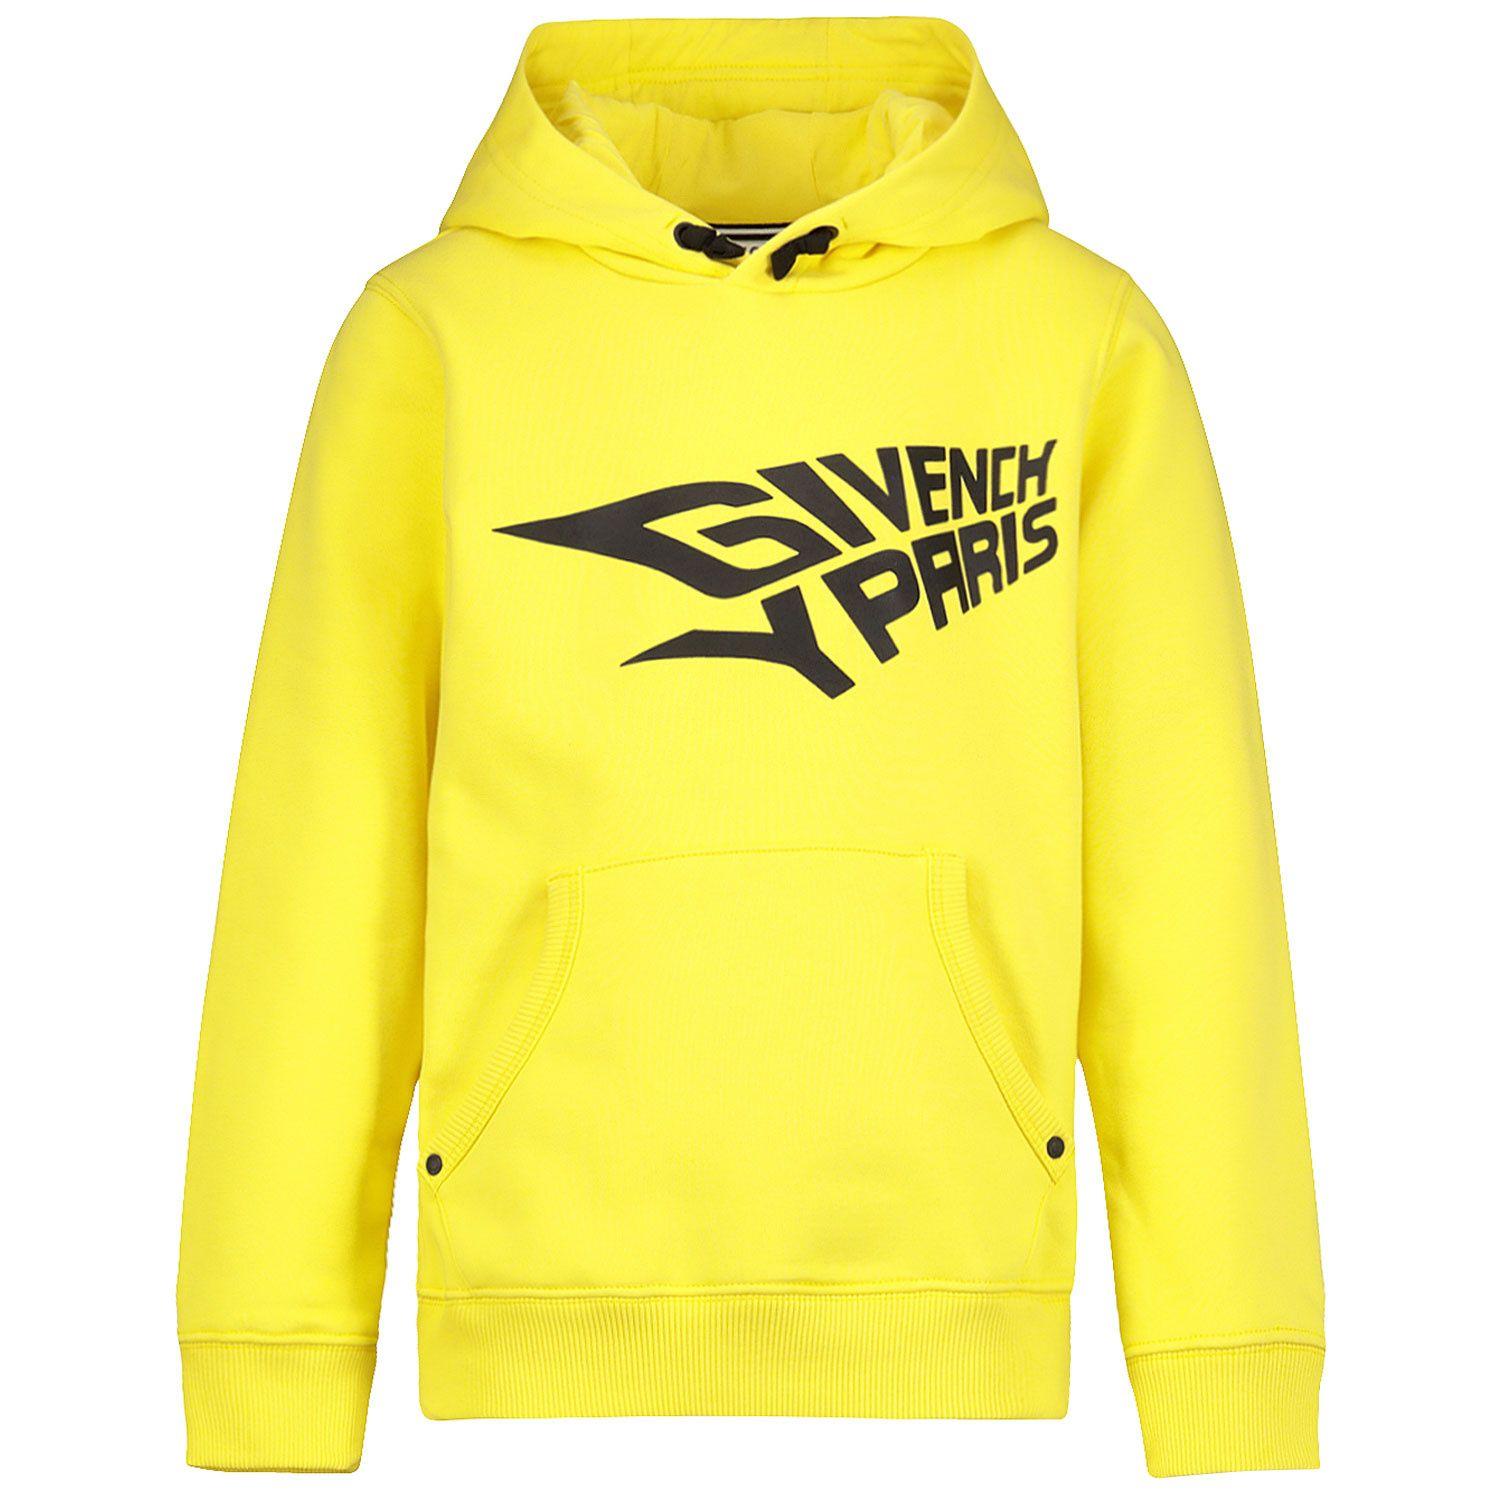 Picture of Givenchy H25206 kids sweater yellow